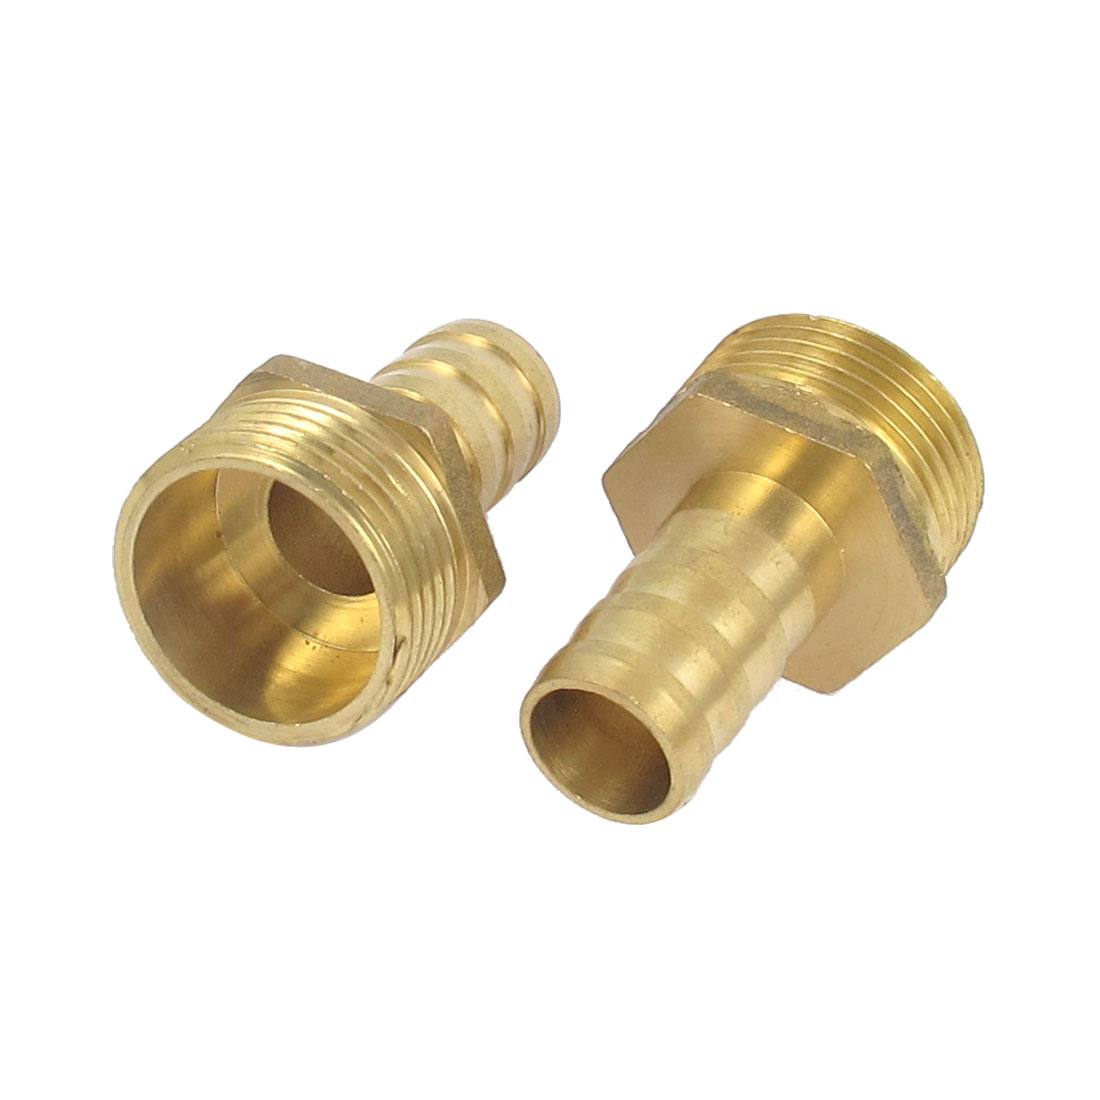 Brass 3/4BSP Male Thread to 14mm Hose Barb Straight Fitting Adapter Coupler 2PCS